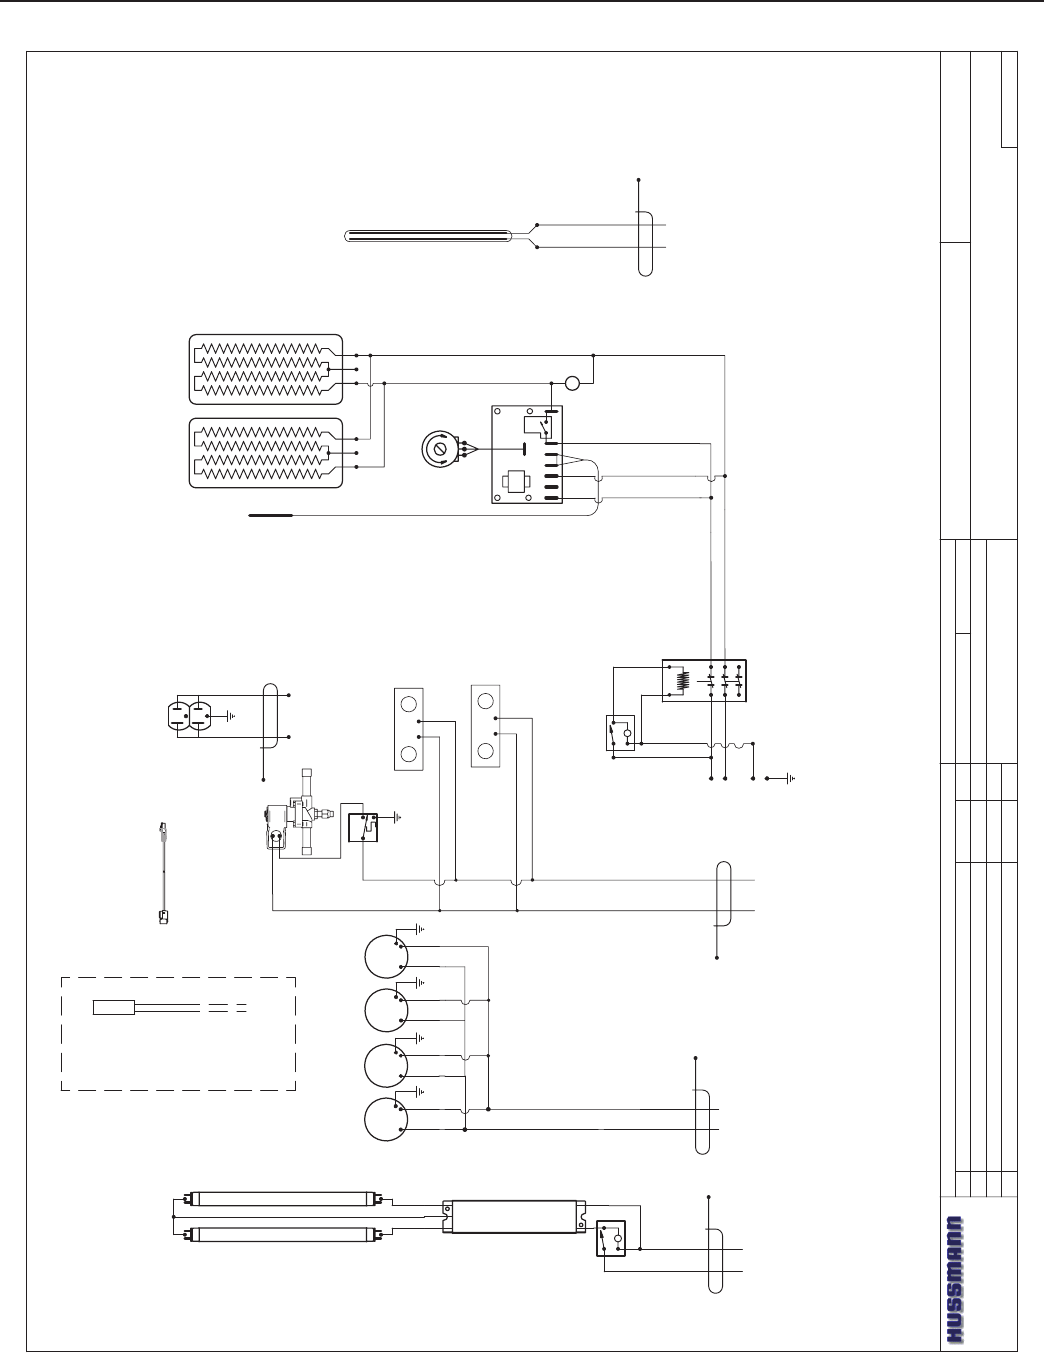 c715db81 ad39 4ed5 ae51 d8cd8e40e0eb bg15 page 21 of hussman refrigerator r3p user guide manualsonline com hussmann rl5 wiring diagram at crackthecode.co